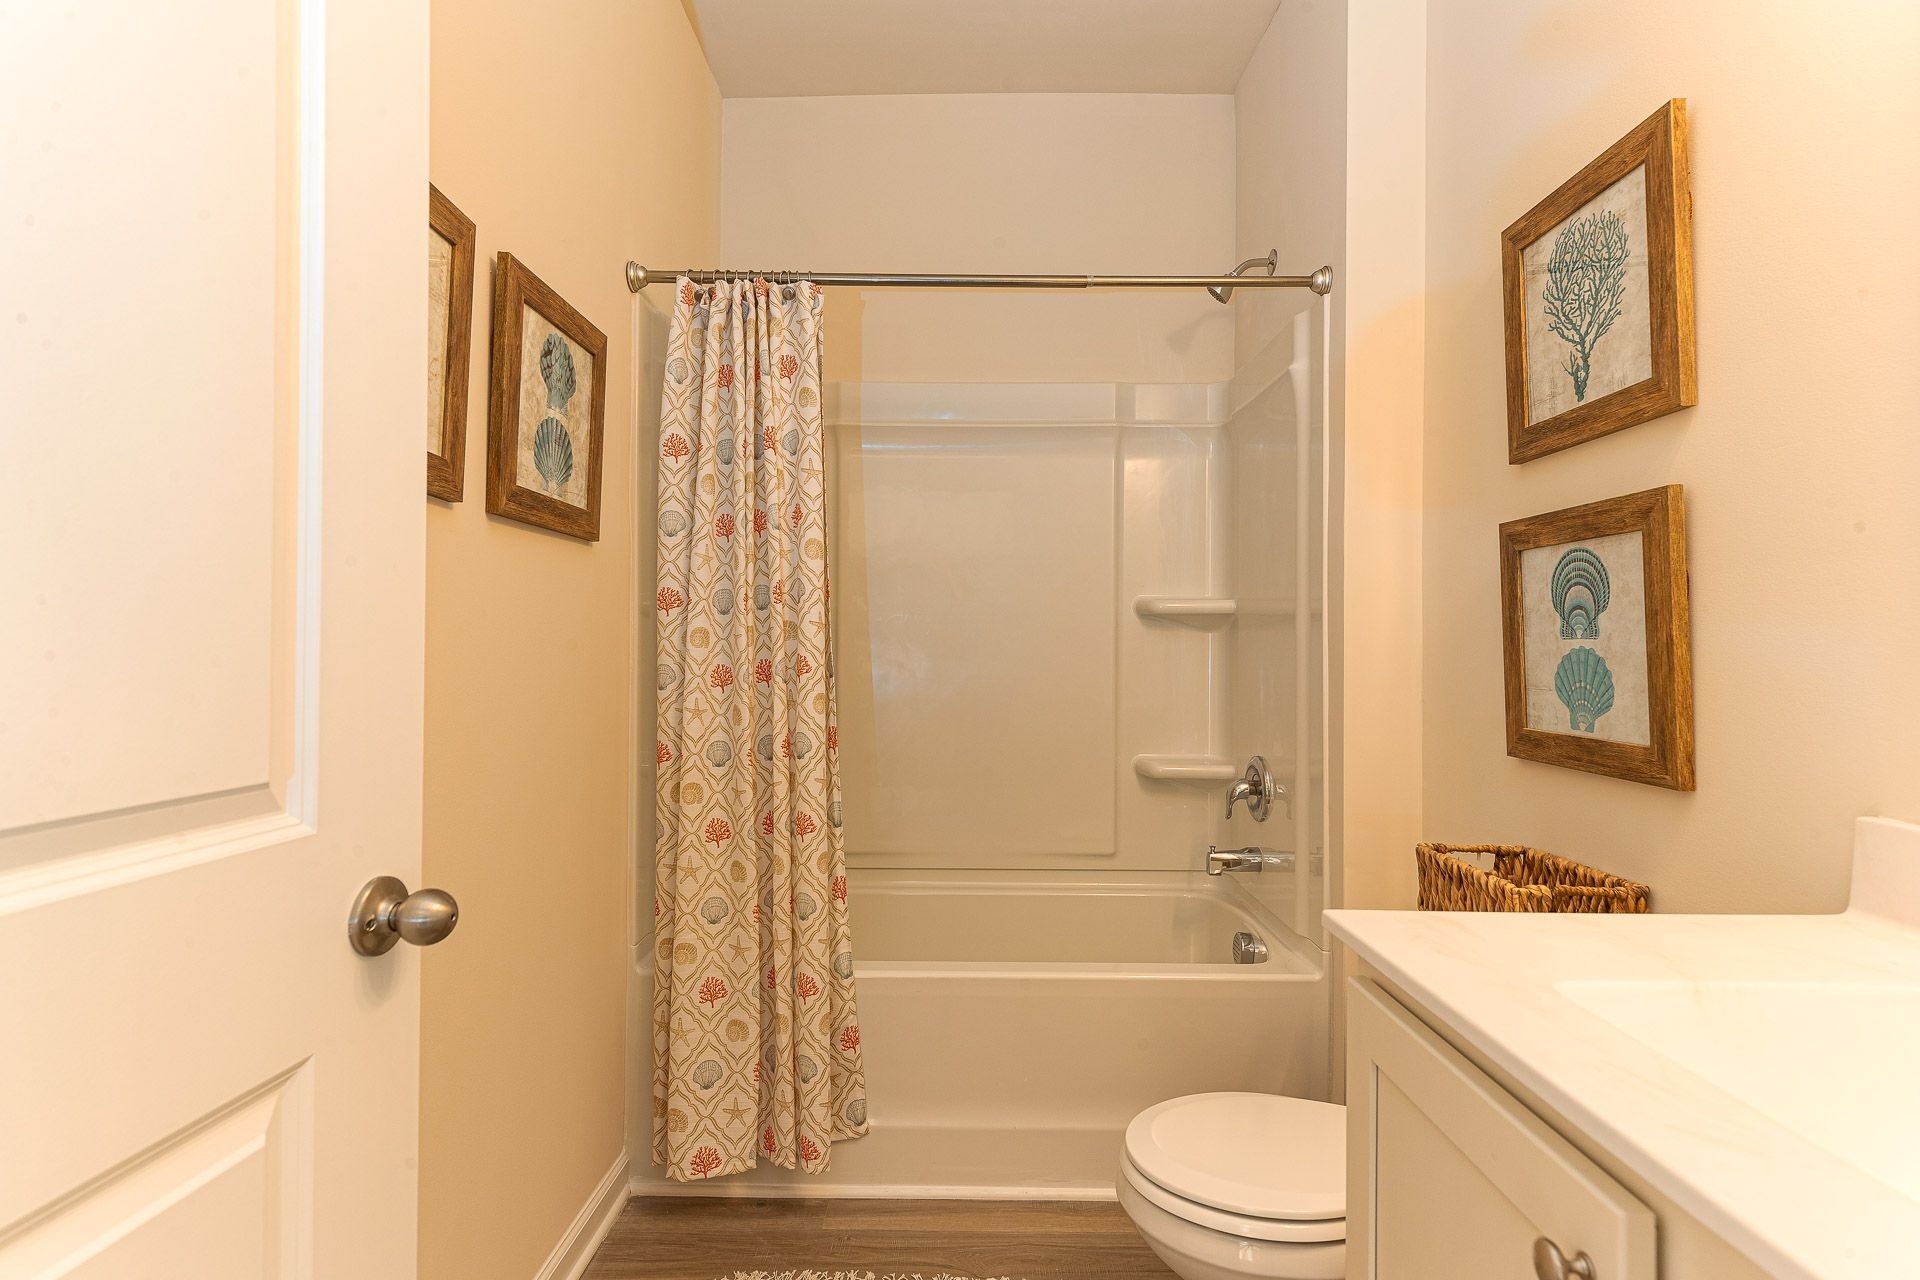 Bathroom featured in the CALI By D.R. Horton in Myrtle Beach, SC